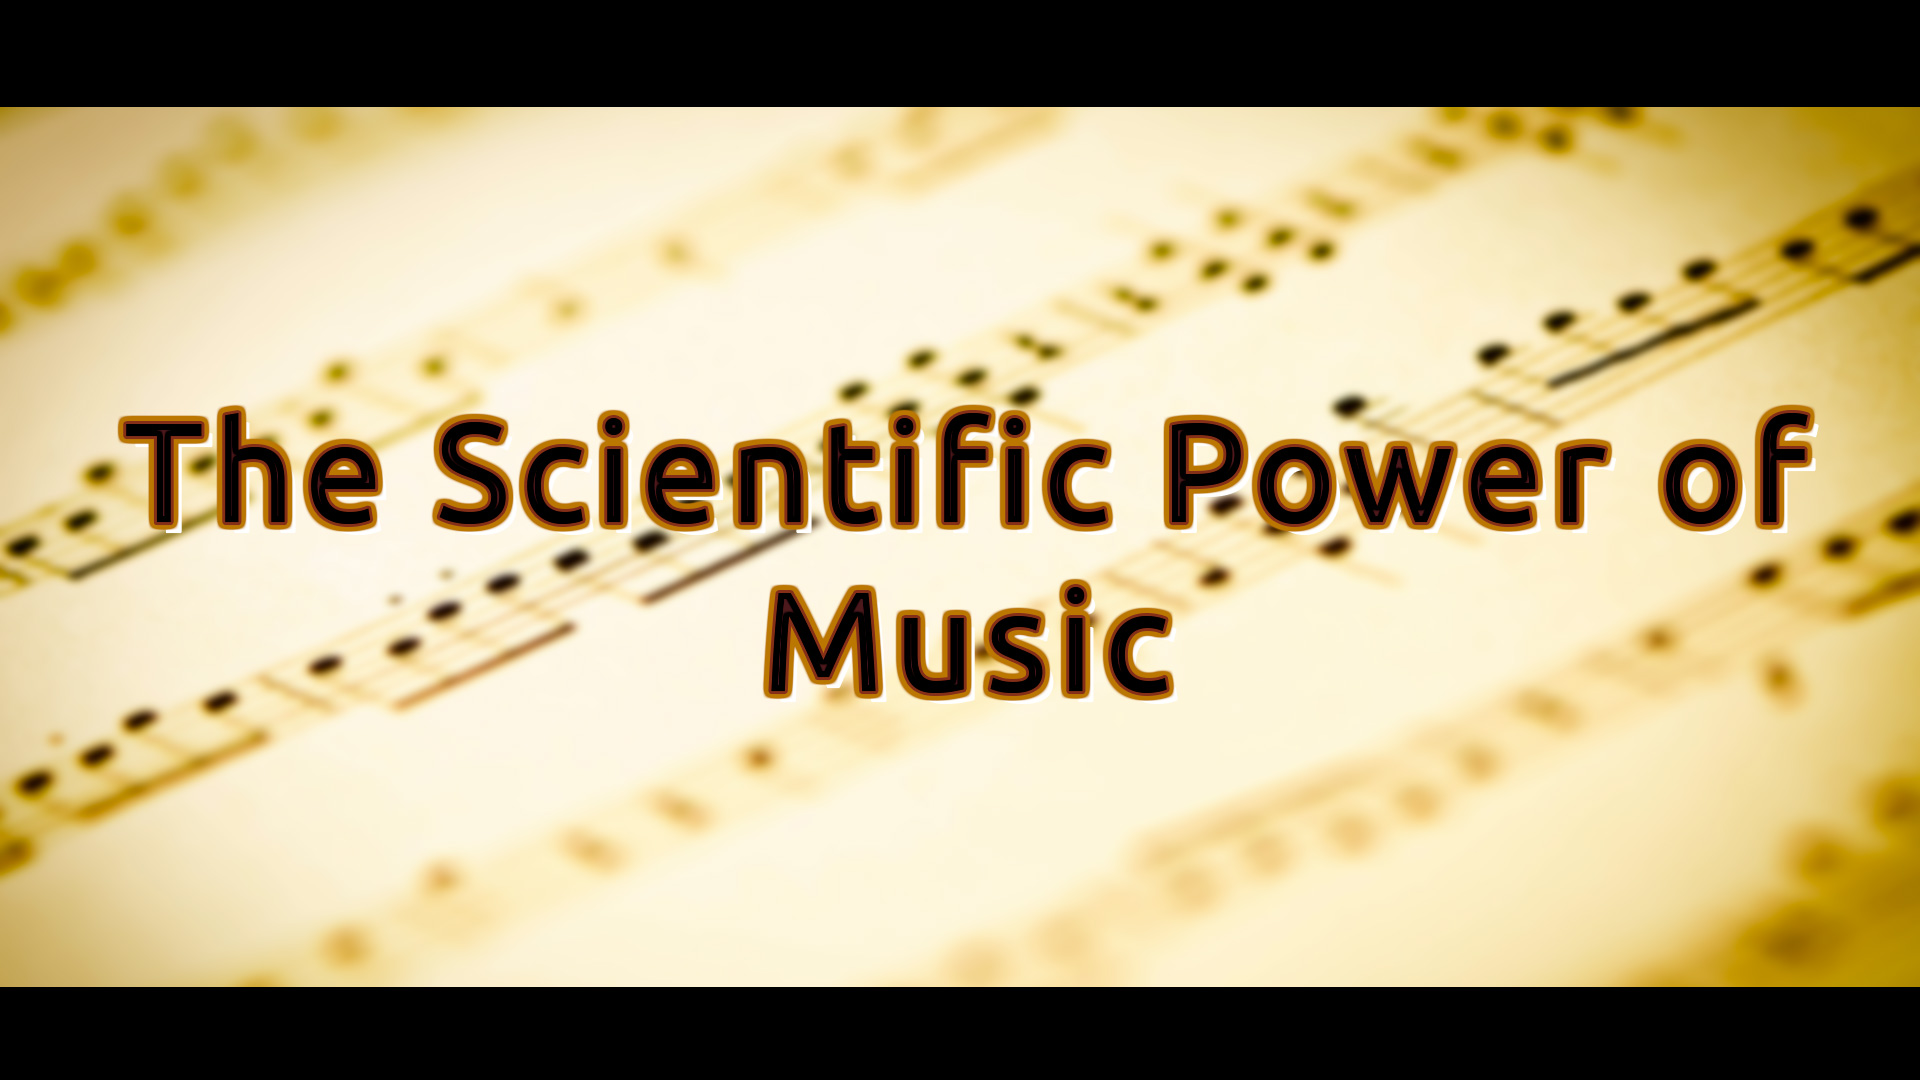 The Scientific Power of Music